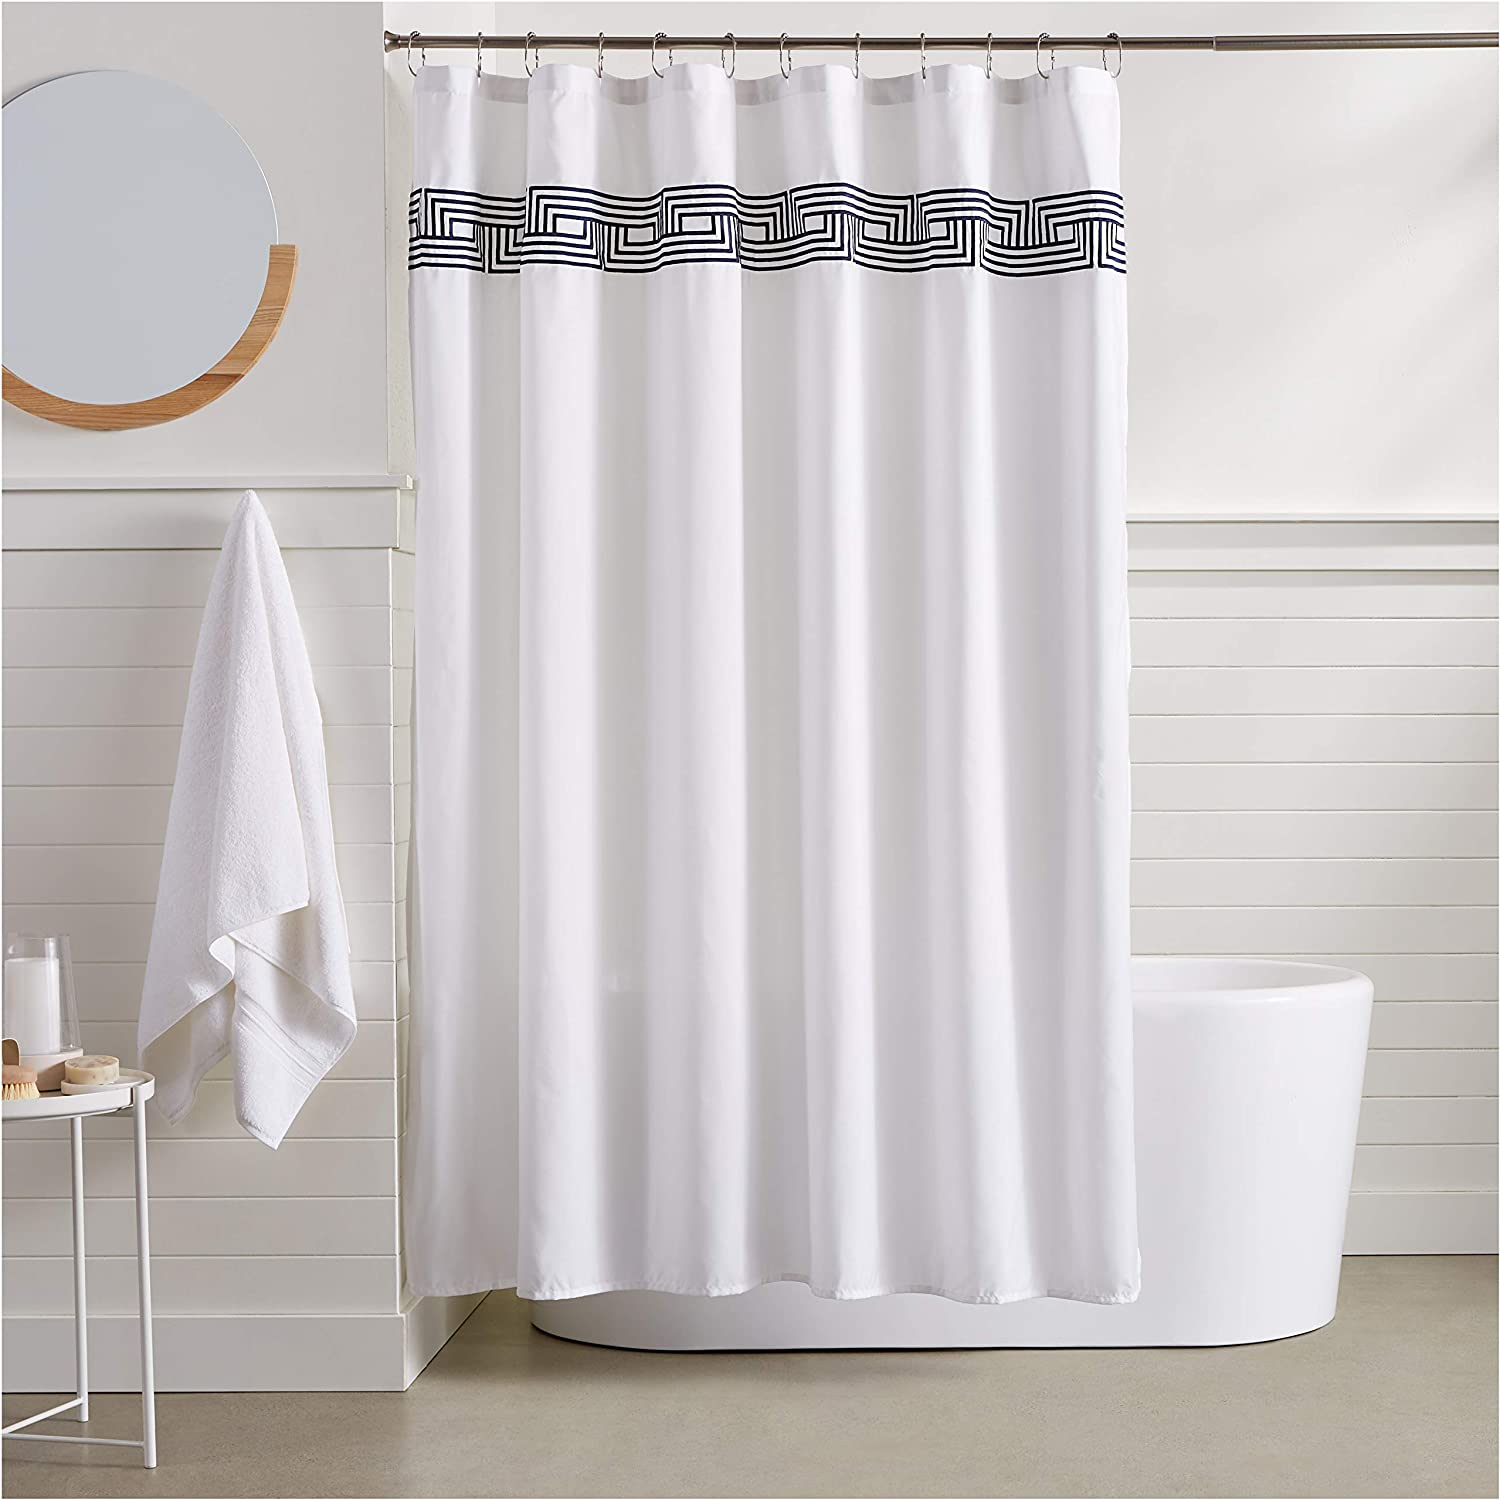 Basics Athena Embroidered Shower Curtain 72 Inch Navy